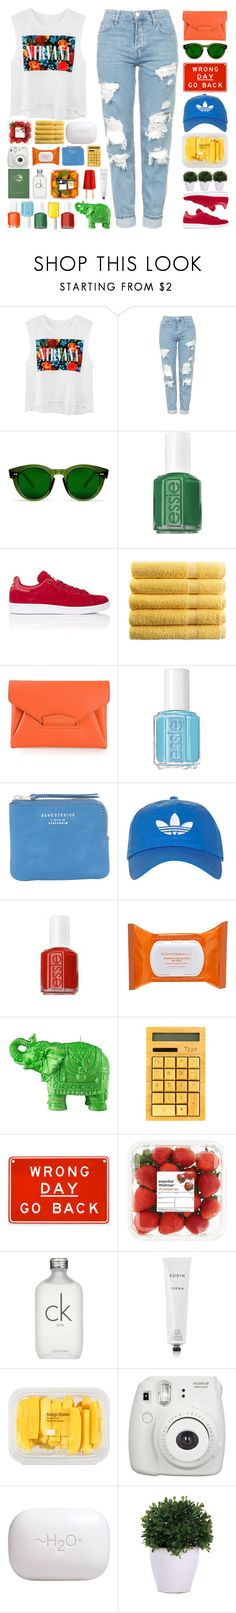 """Courtney"" by vandesousa ❤ liked on Polyvore featuring Topshop, Essie, adidas, Givenchy, Acne Studios, Dr. Dennis Gross Skincare, Mario Luca Giusti, Calvin Klein, Rodin and MANGO"